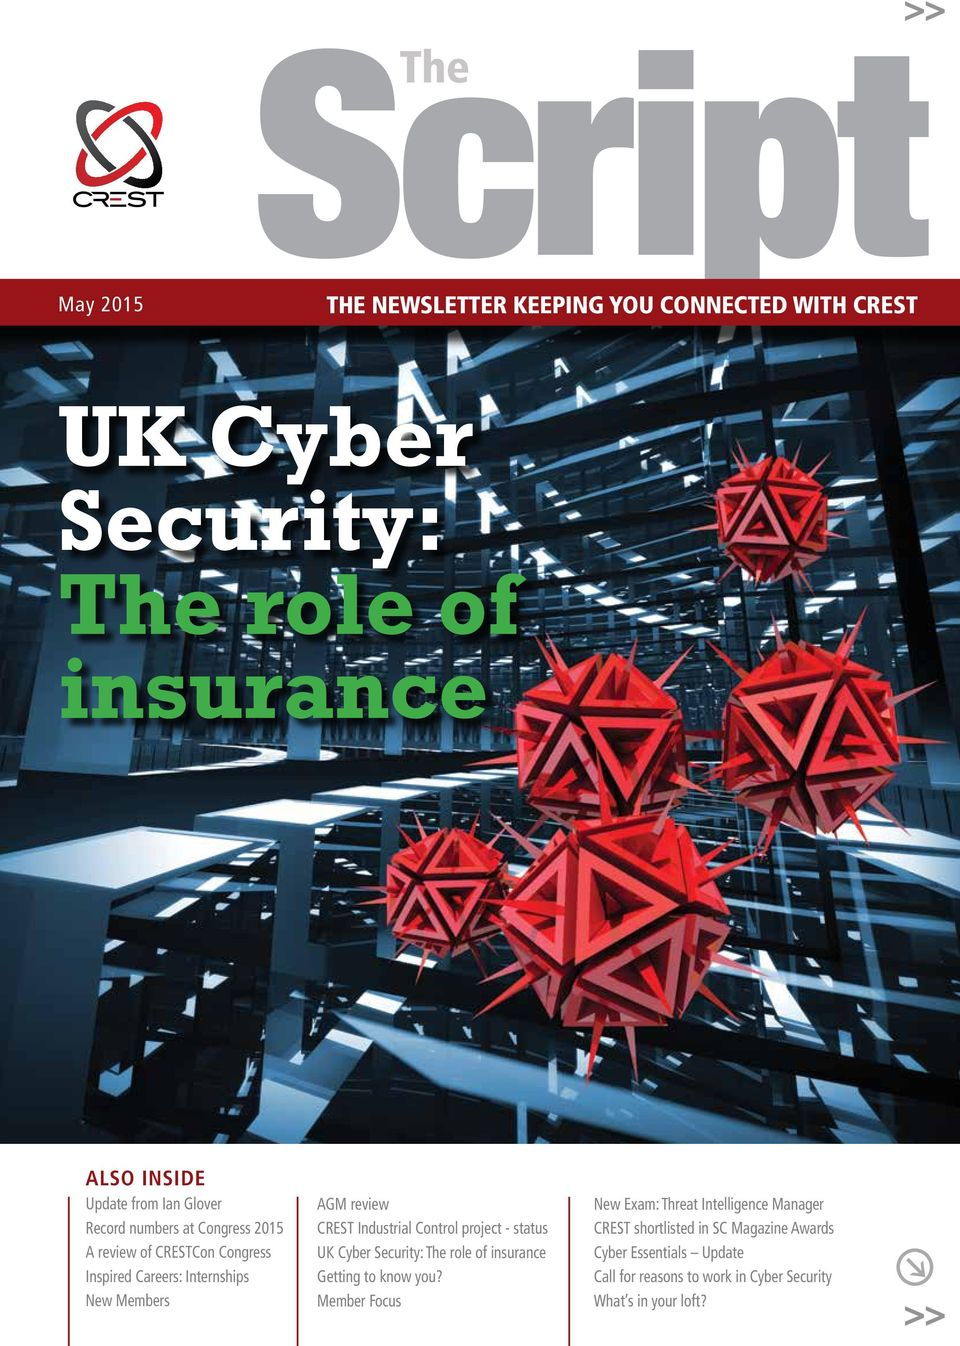 Industrial Control project - status UK Cyber Security: The role of insurance Getting to know you?